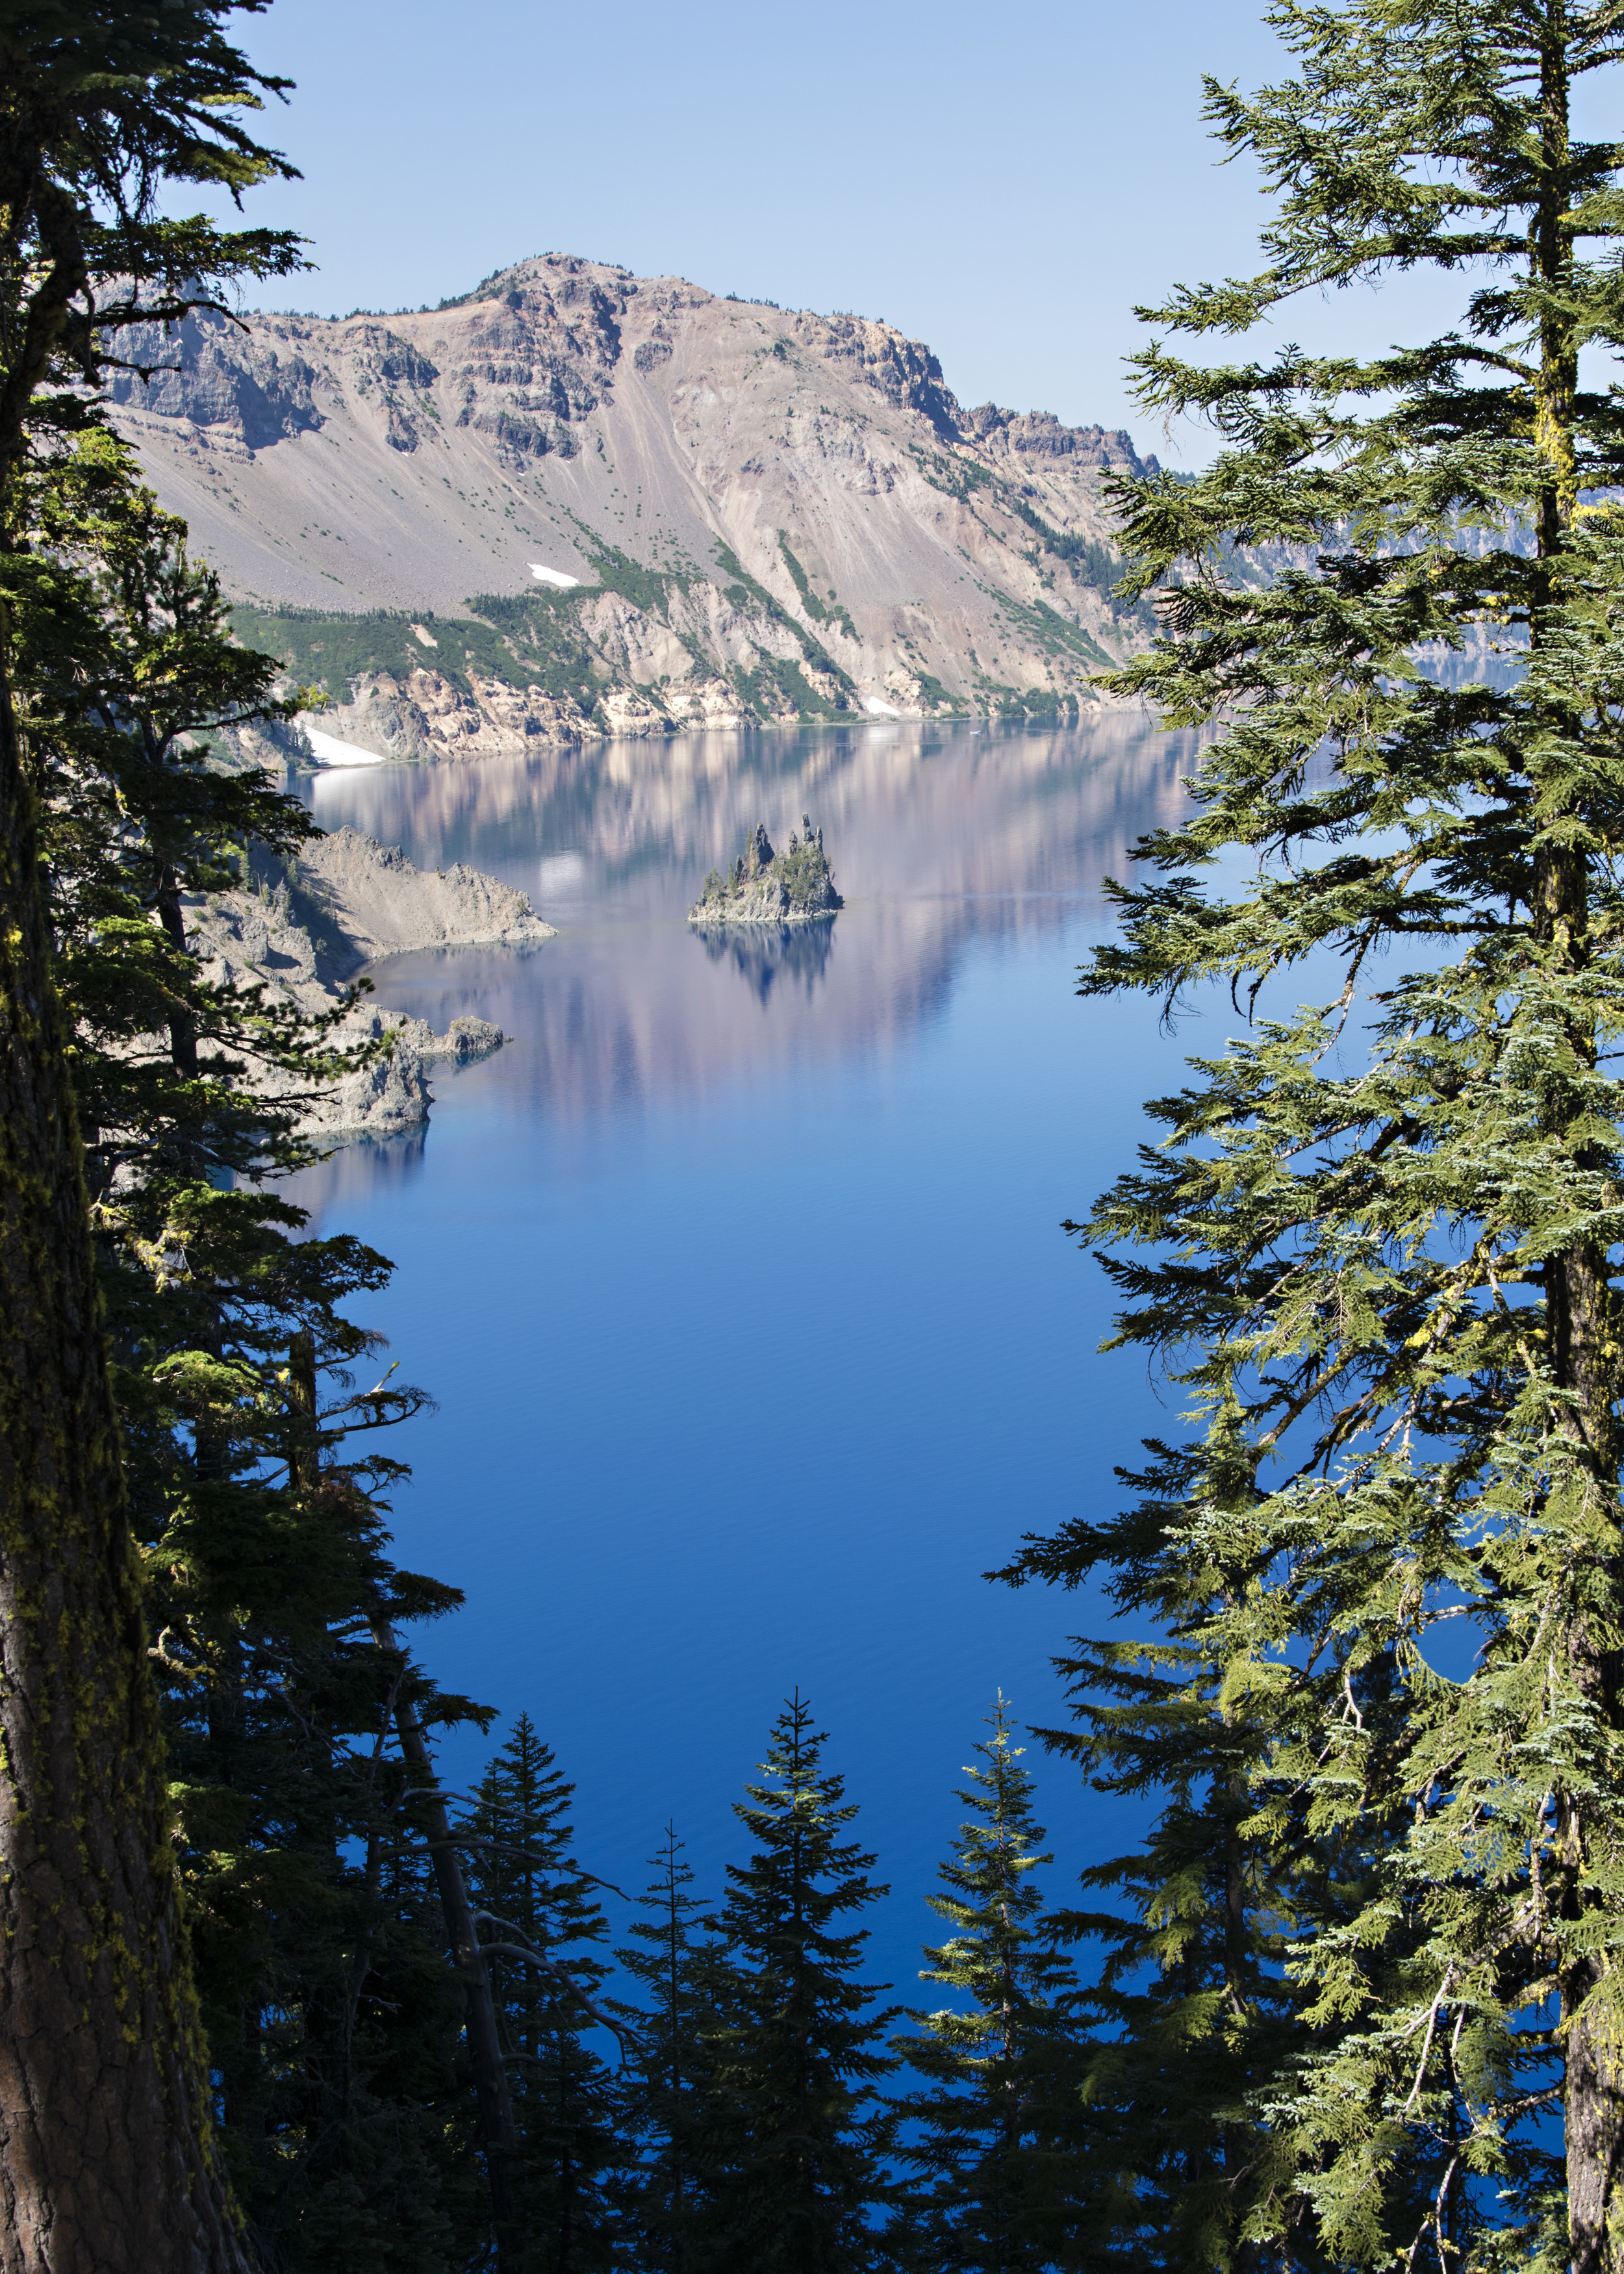 Crater Lake is impossibly blue. This is a view through the trees to Phantom Shiprock. Nikon D800, Nikkor 24-120mm @ 38mm,ISO 100, f8, 1/100 sec.